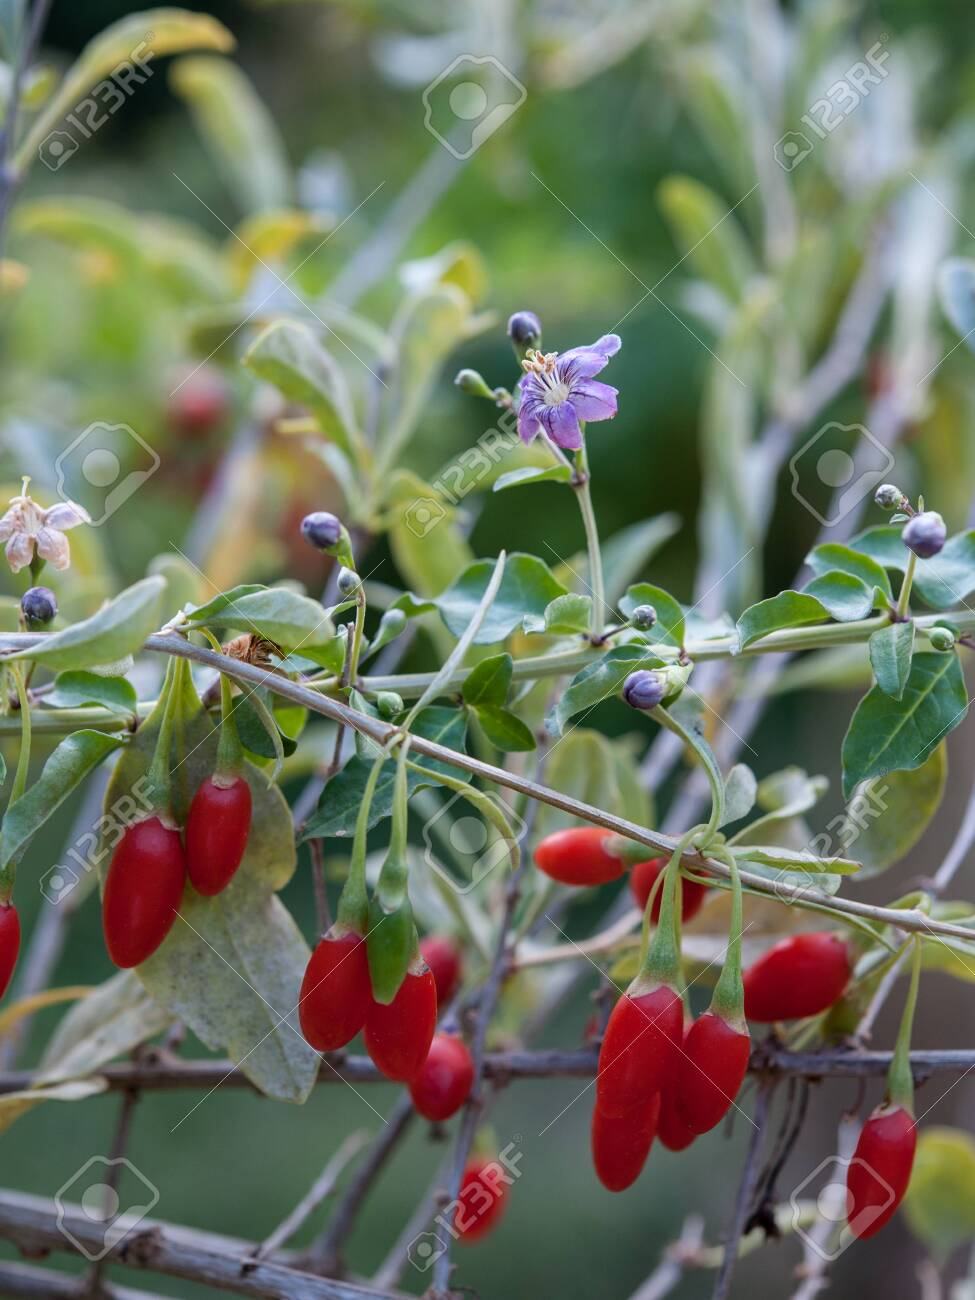 Lycium Barbarum Plant Goji Berry And Derived Products Became